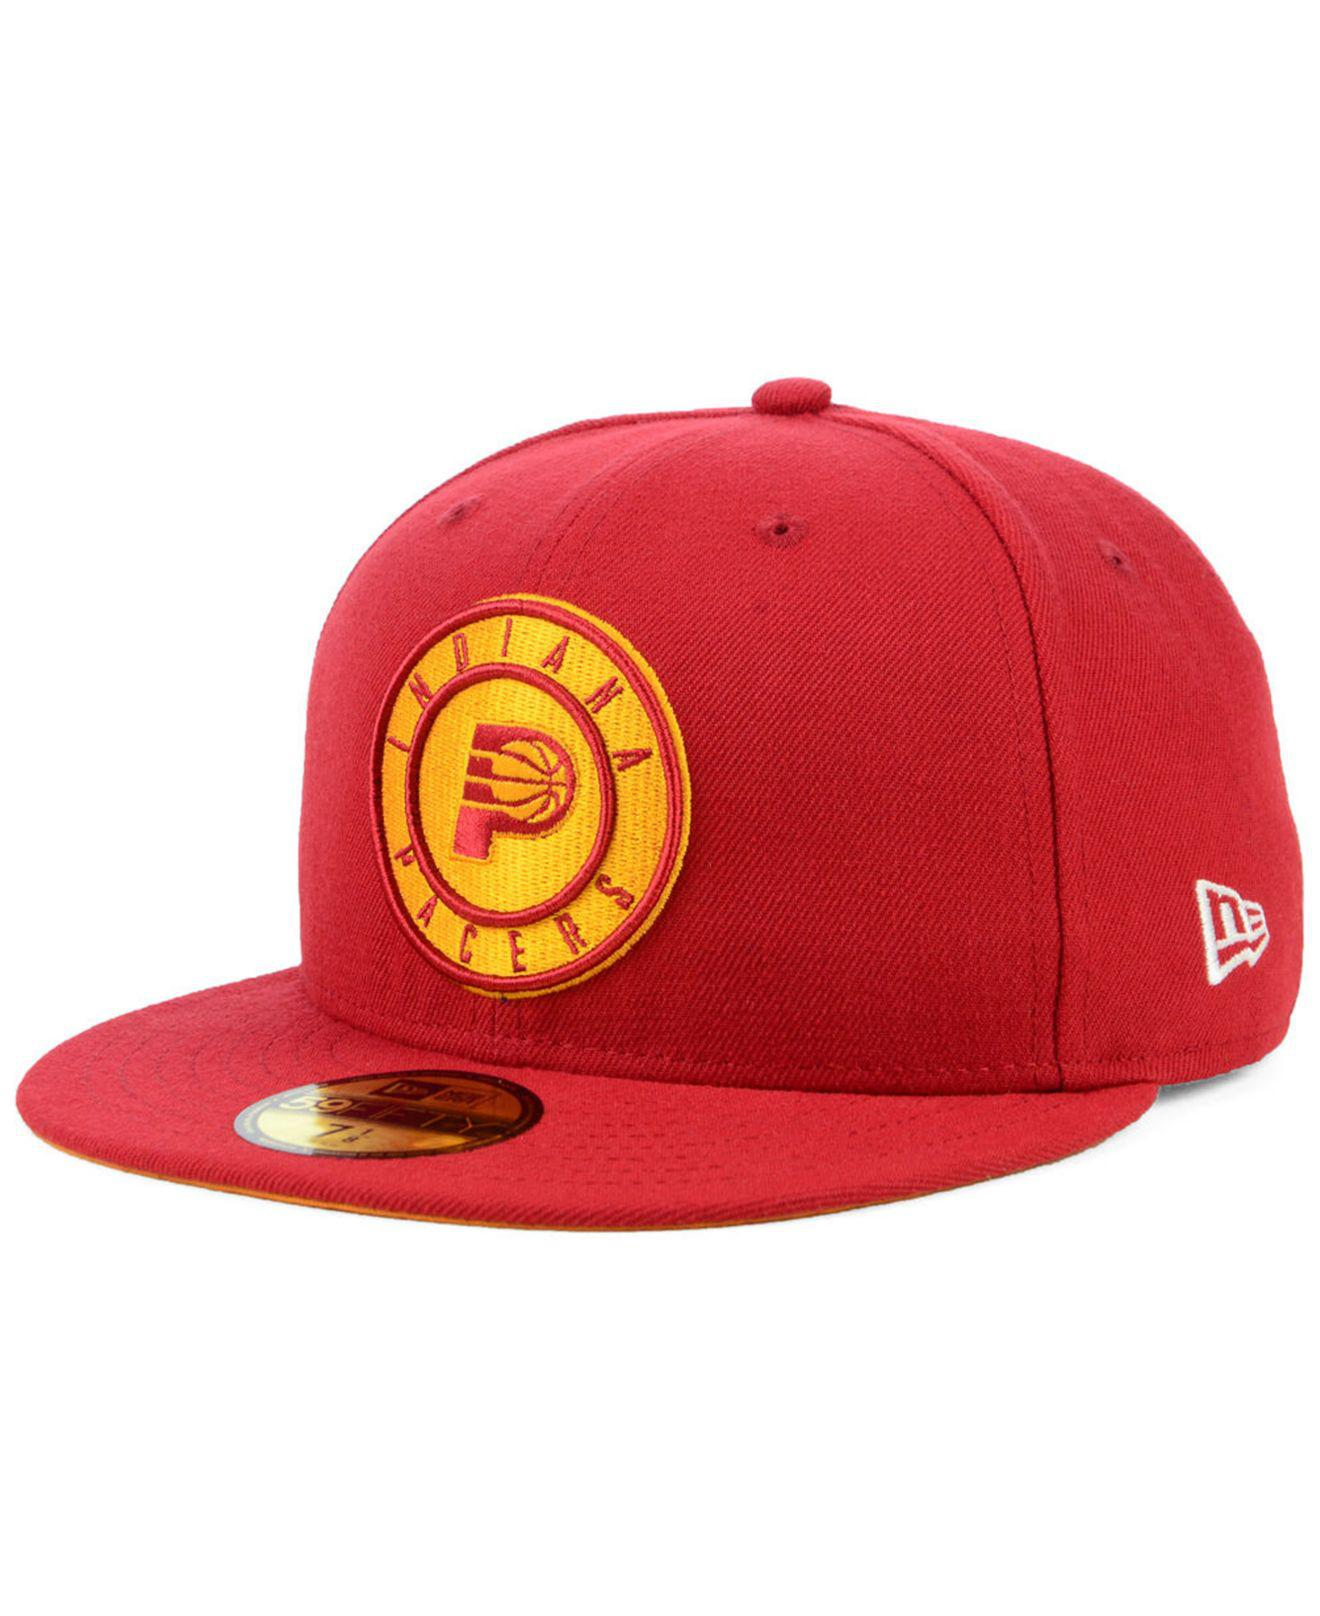 official photos 80d37 b9cea Lyst - KTZ Indiana Pacers Hardwood Classic Nights 59fifty Fitted Cap ...